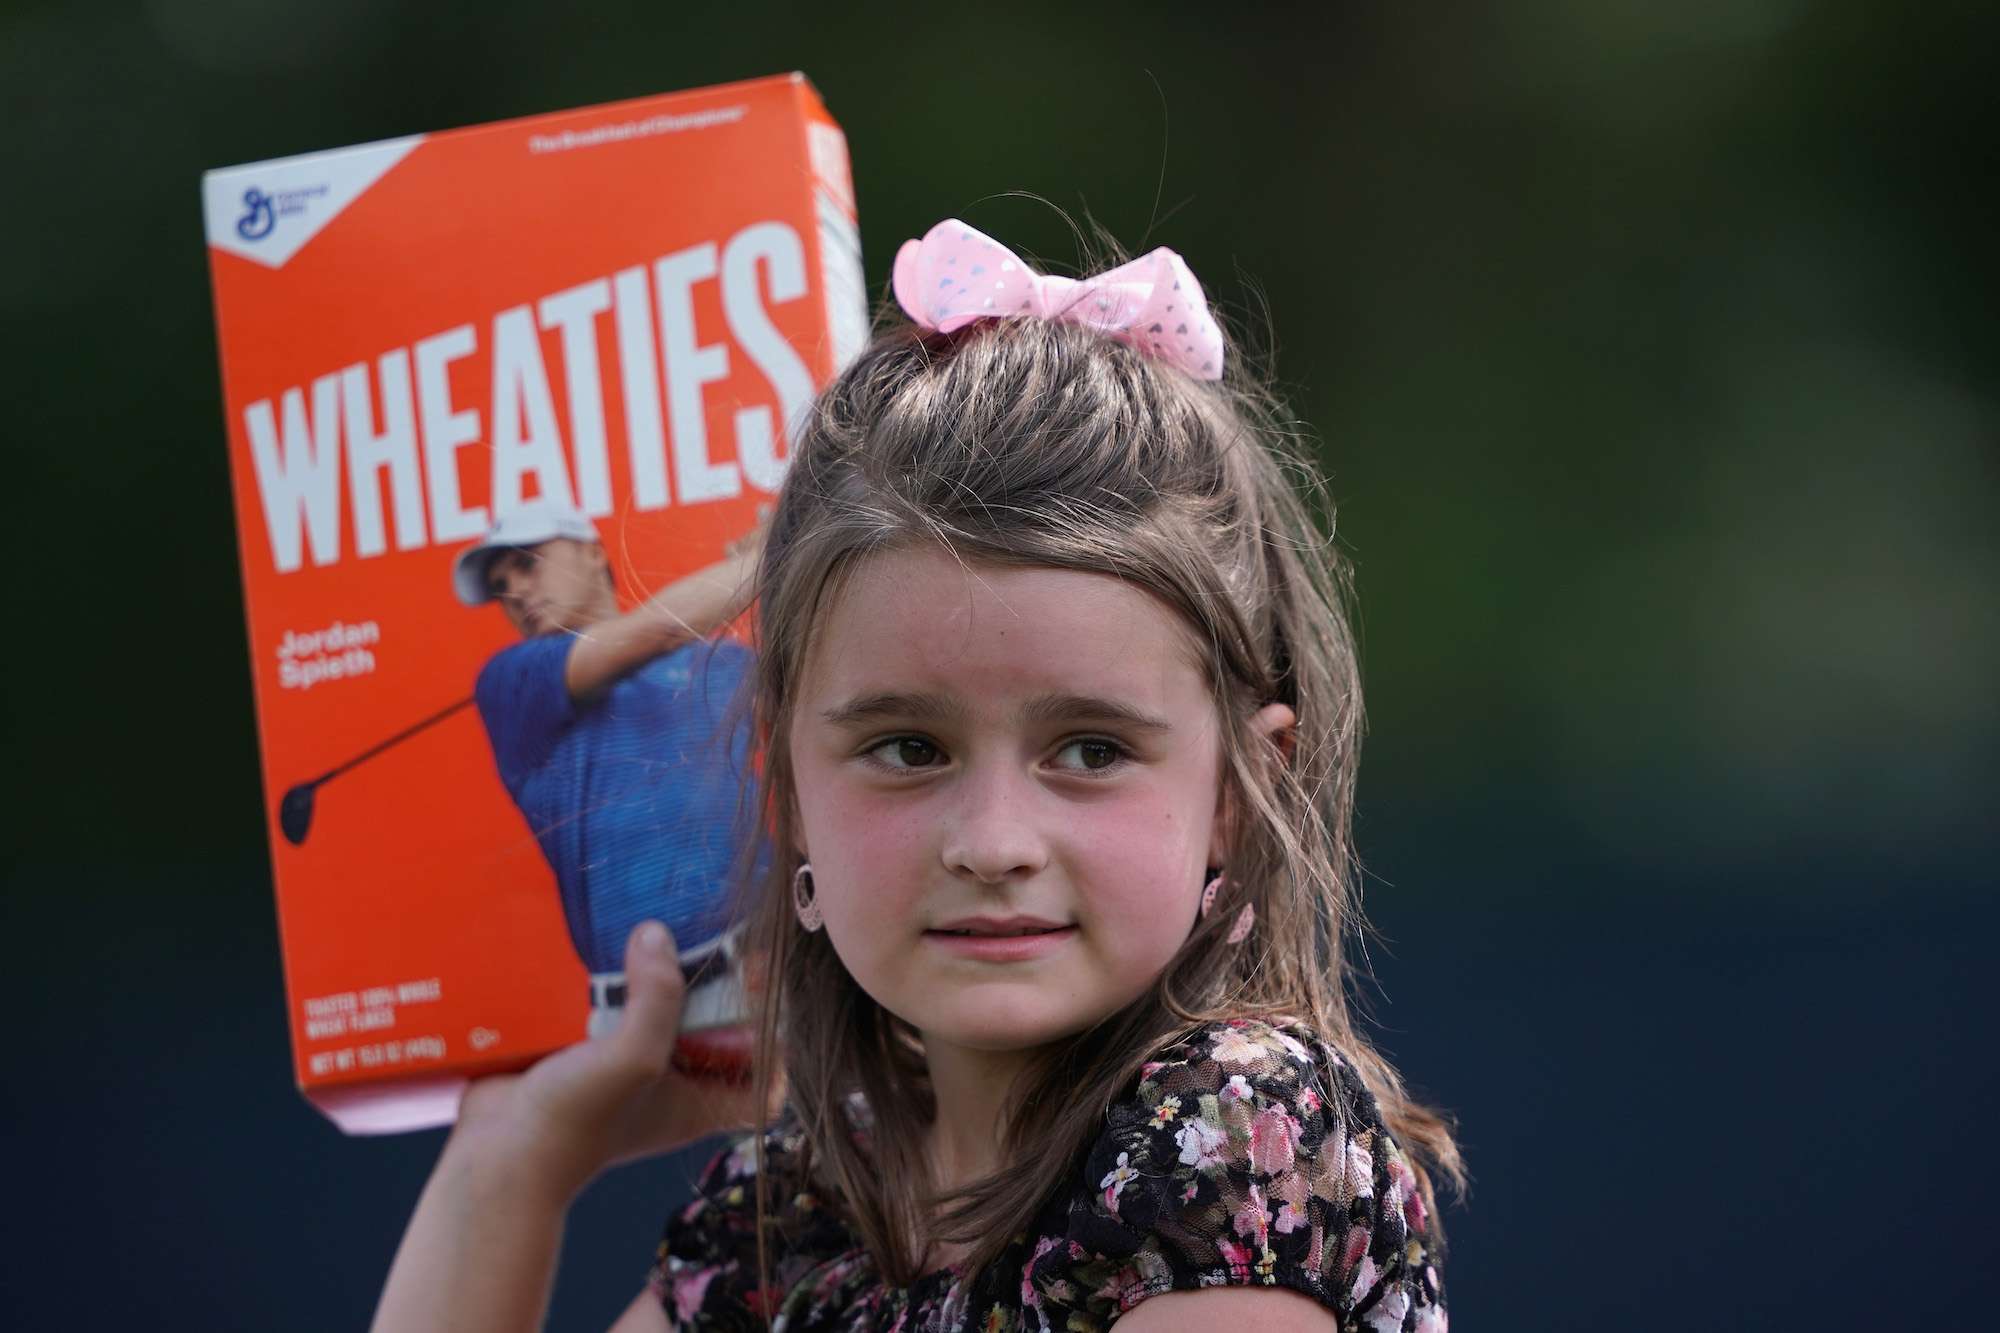 2018 PGA Championship: Preview Day 3 - Young Fan Holds Up Jordan's Wheaties Box